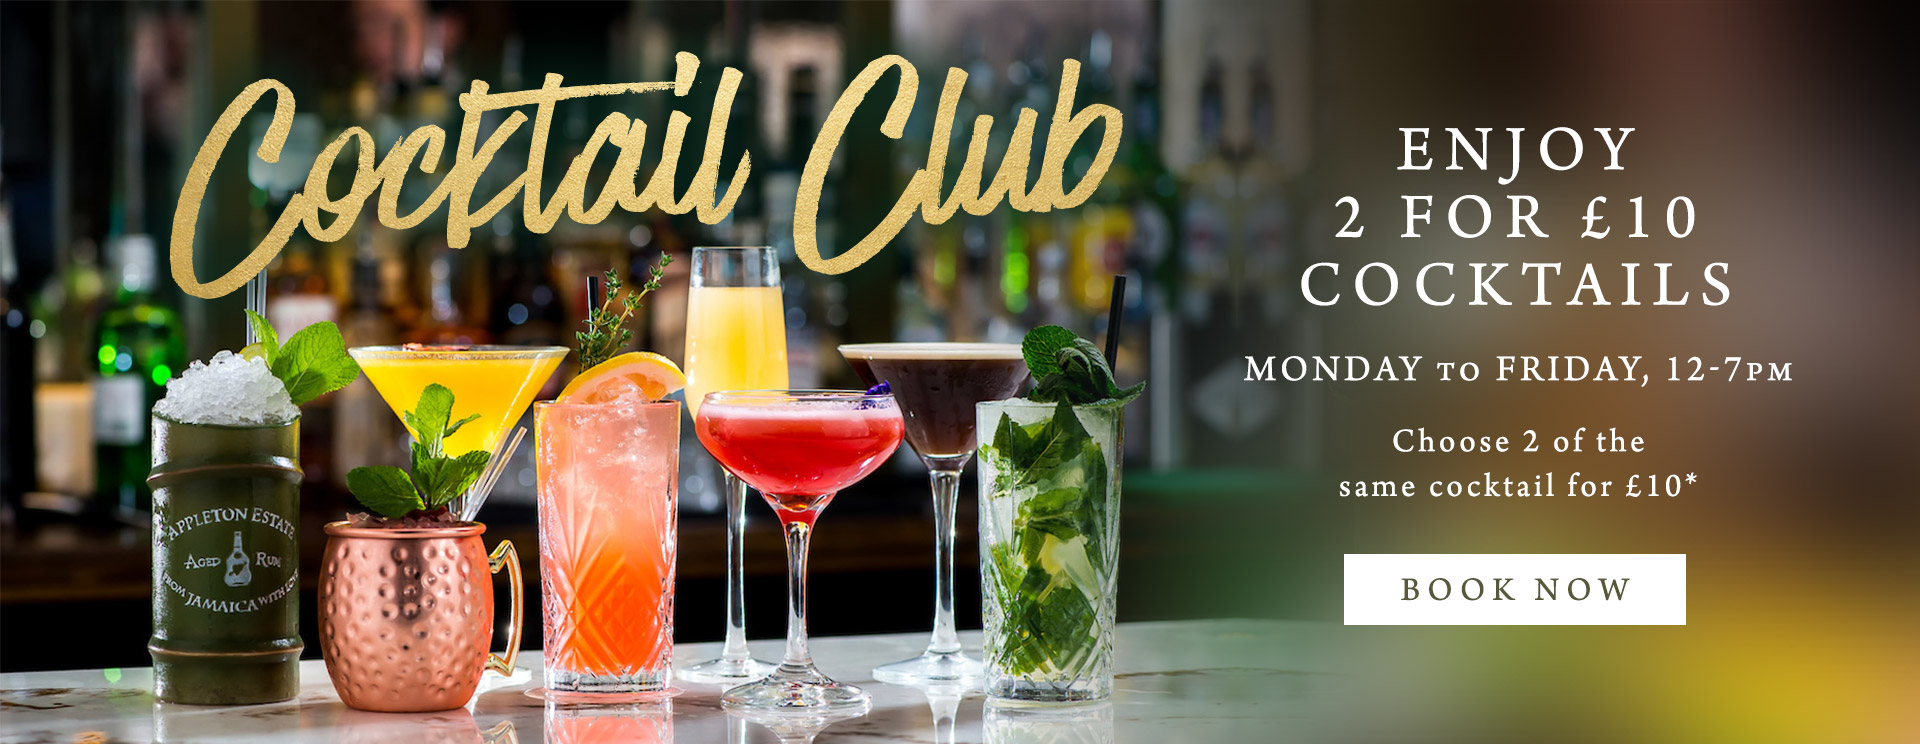 2 for £10 cocktails at The George & Dragon